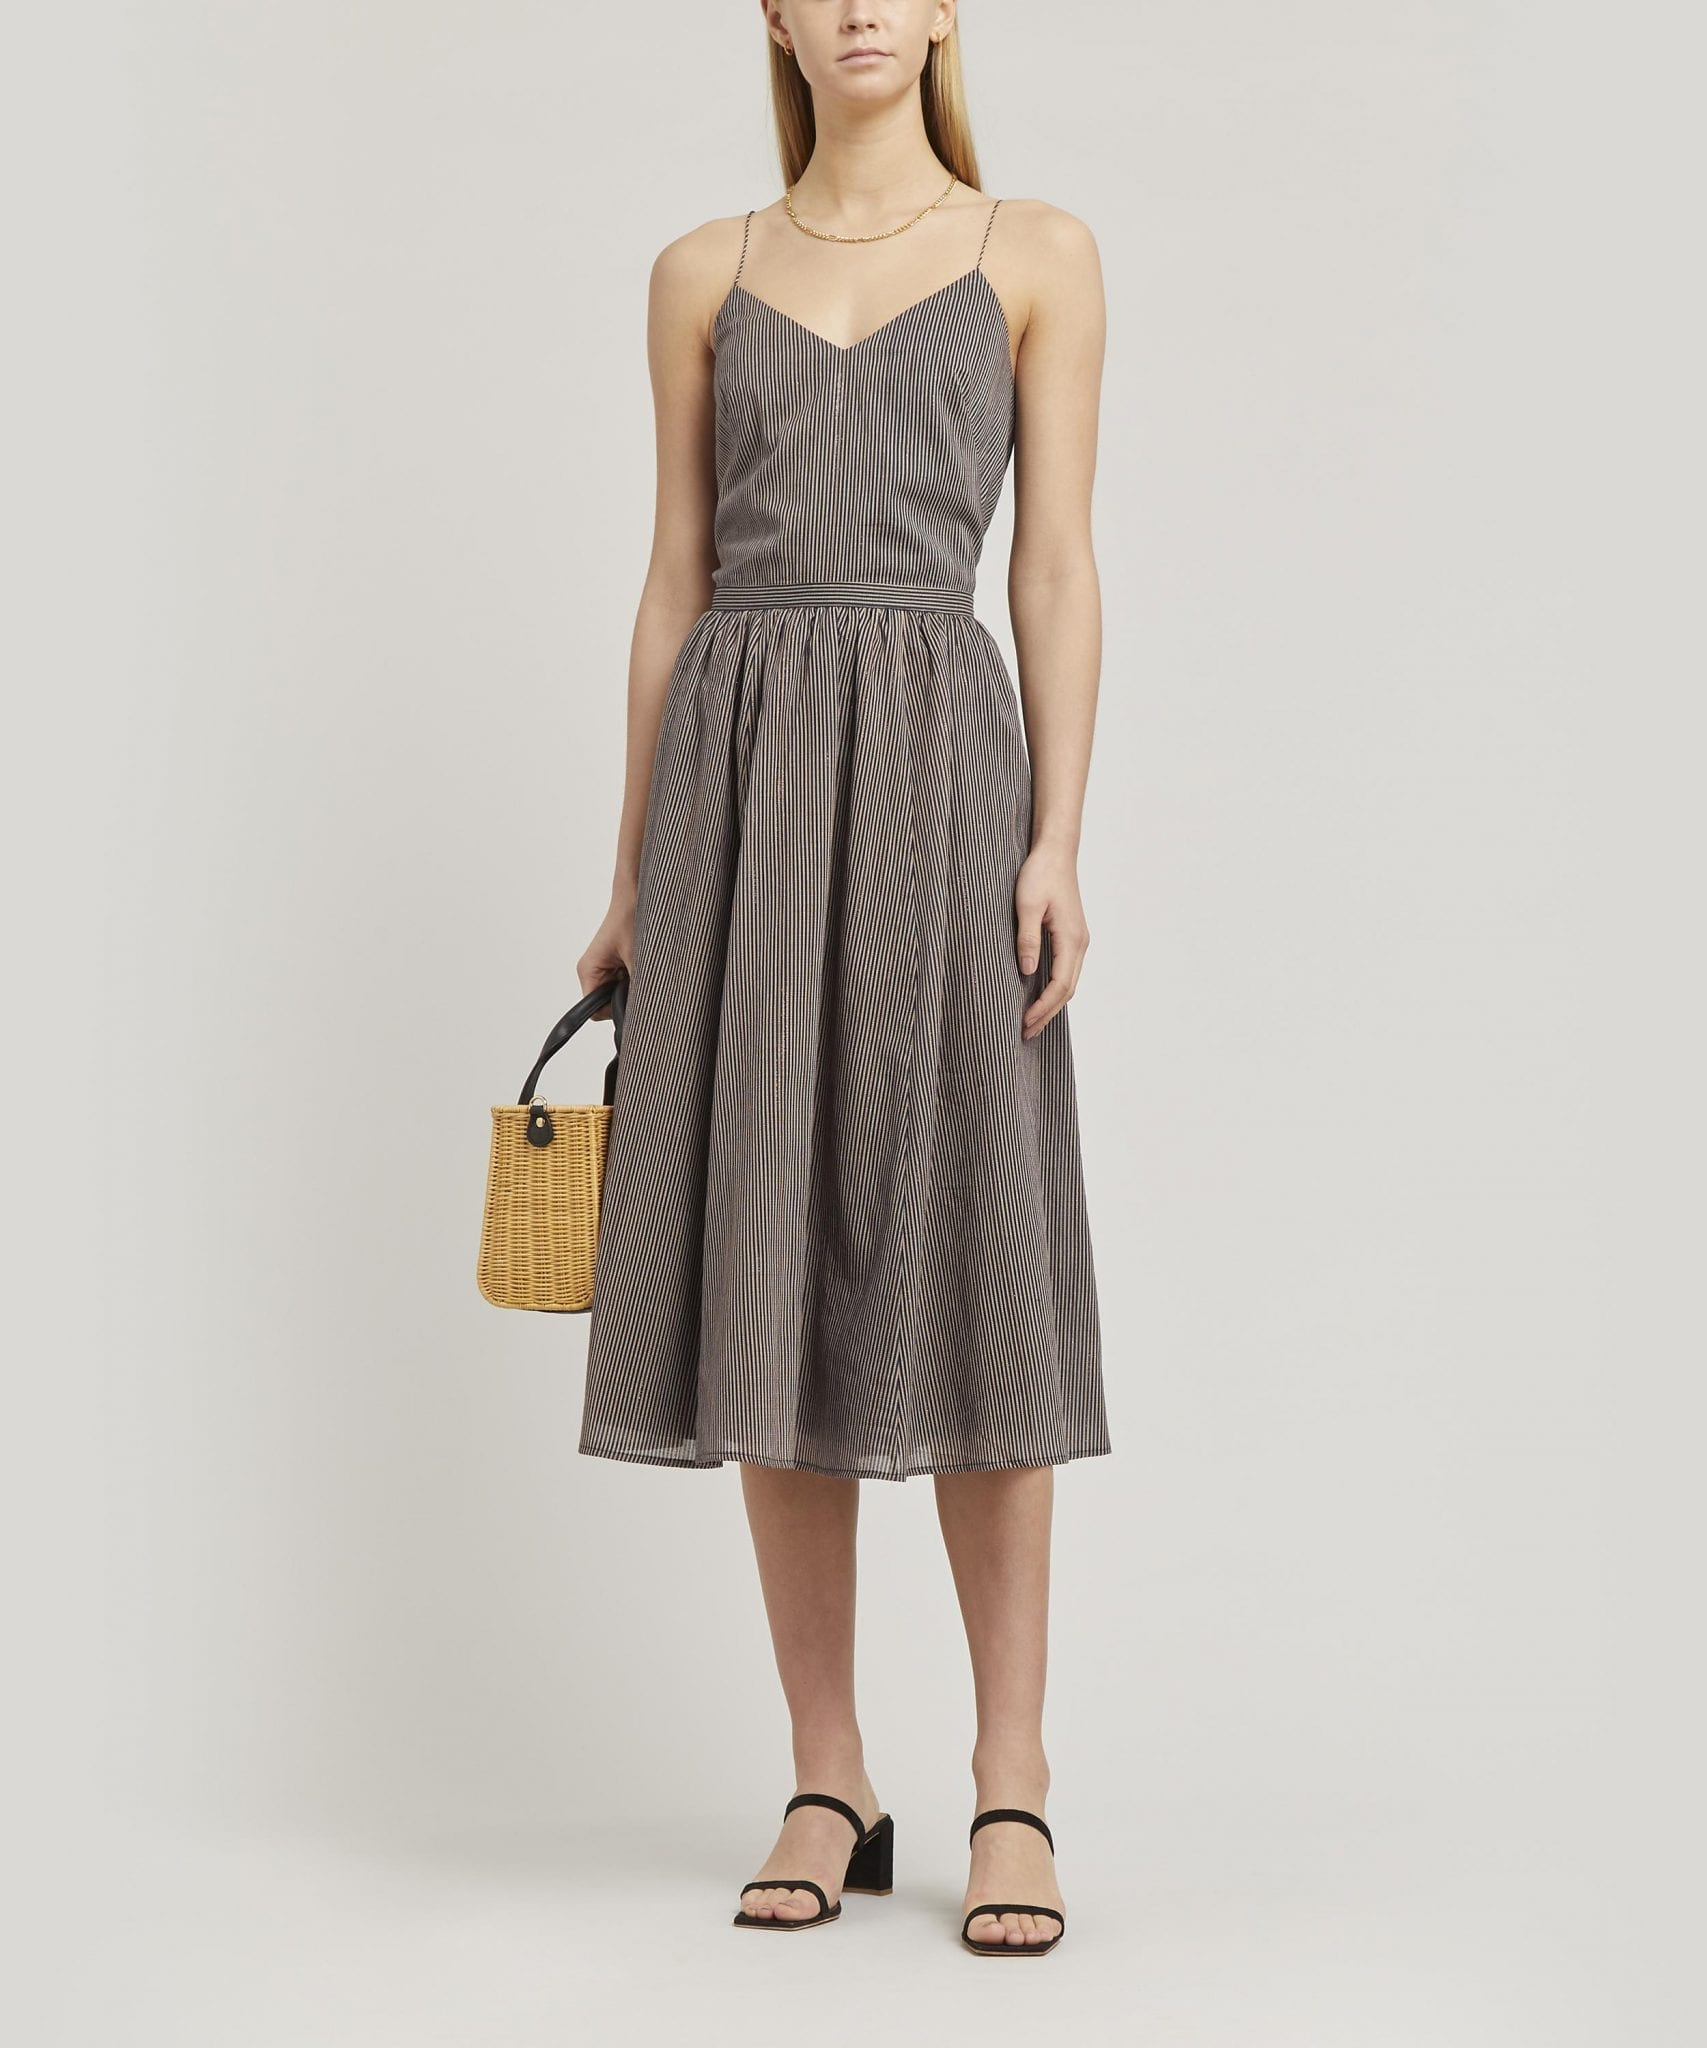 SESSÙN Sospir Open-Backed Midi-Dress